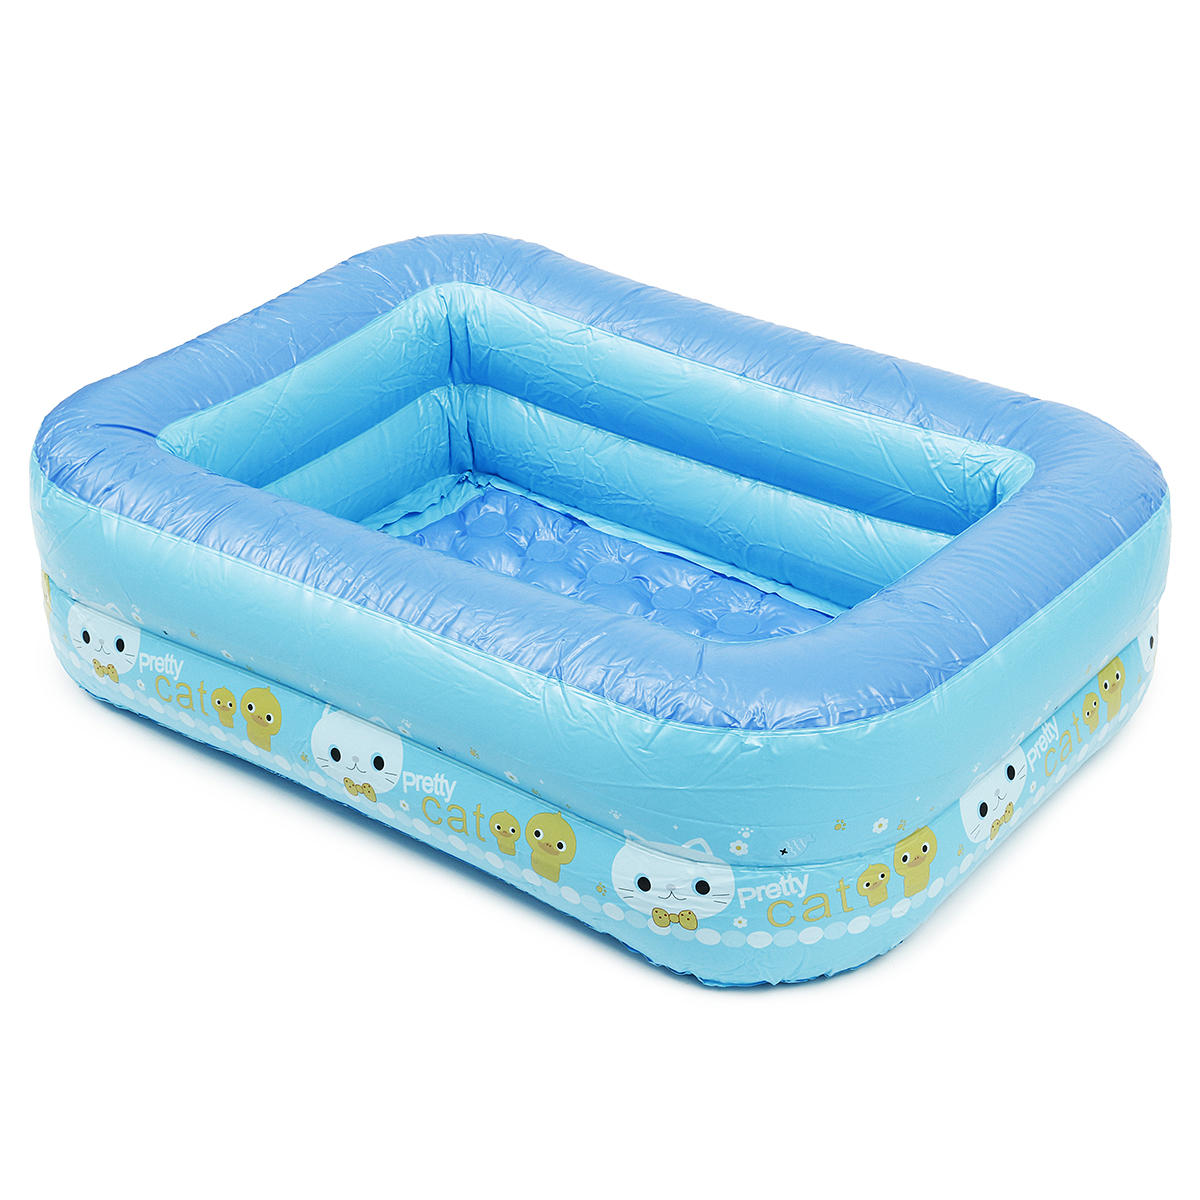 Baby kids Toddler Child PVC Inflatable Swimming Pools Bath Spas Summer Fun Toy - 2